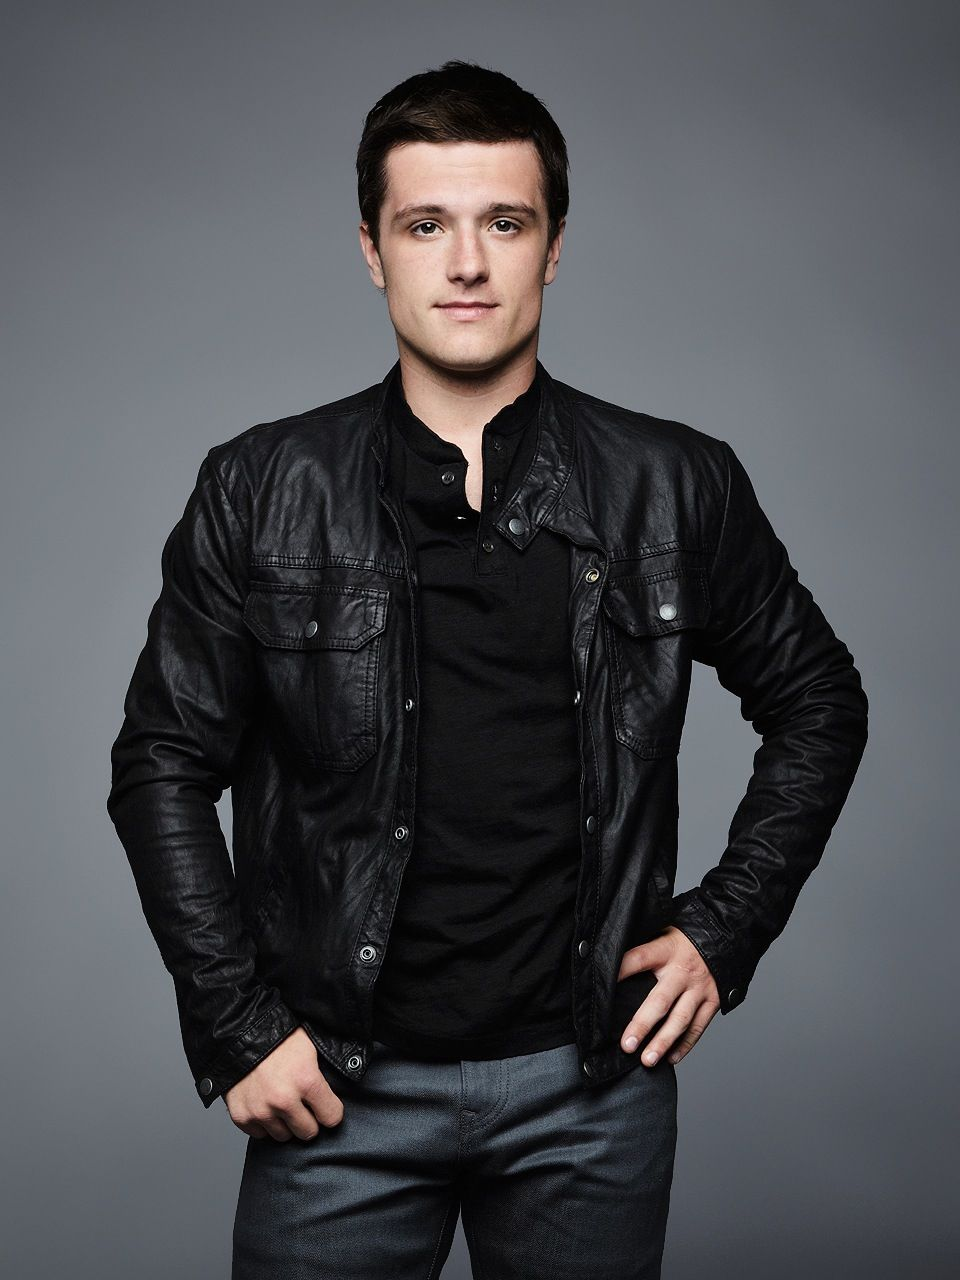 Josh Hutcherson The Hunger Games Journey To The Center Of The